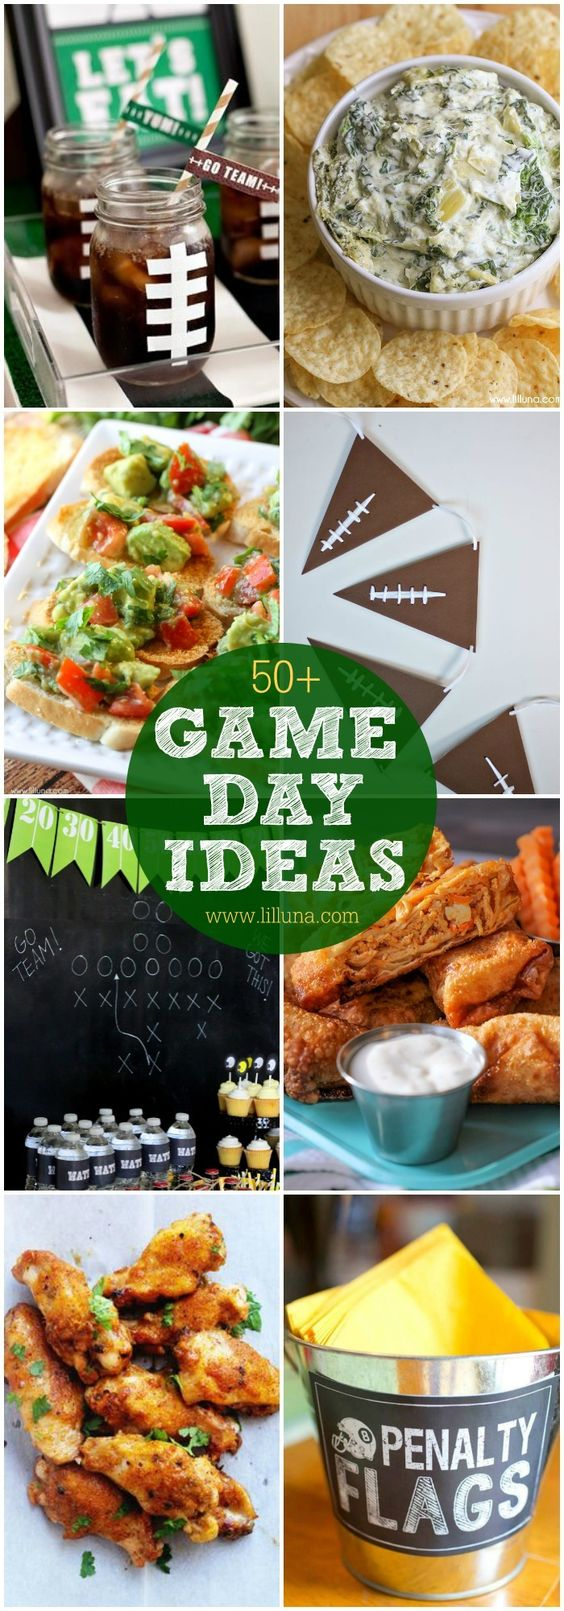 A roundup of Game Day ideas including printables, decor ideas, and recipes perfect for you next football party.